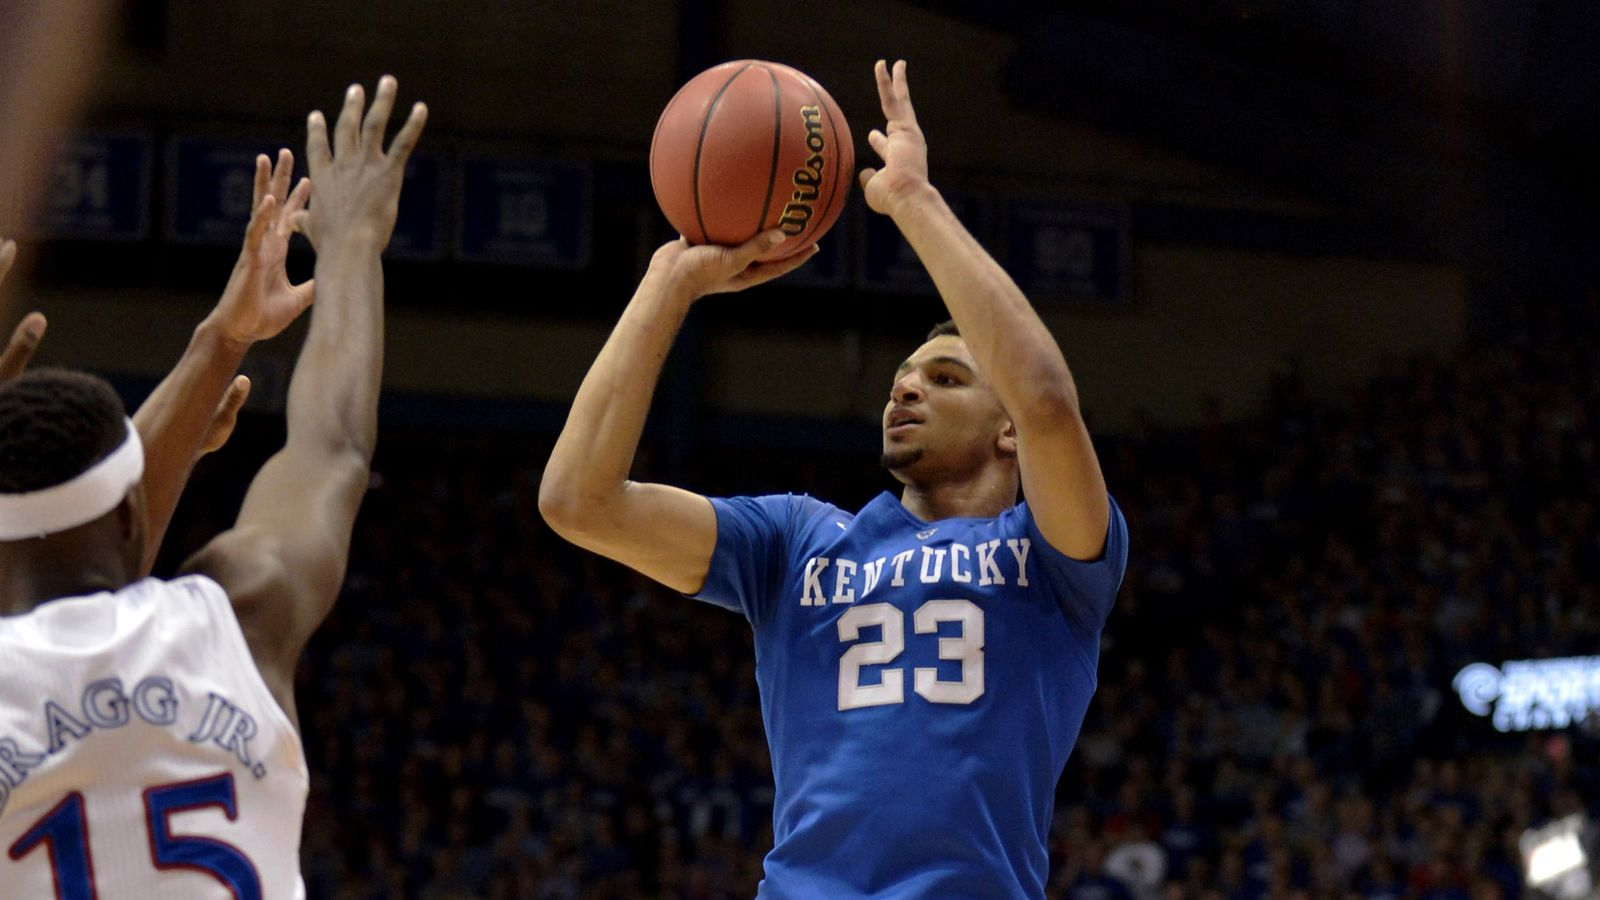 Kentucky Basketball Is An Enigma Well Into The Season: Kentucky Basketball: Offensive Trends Heading Into The